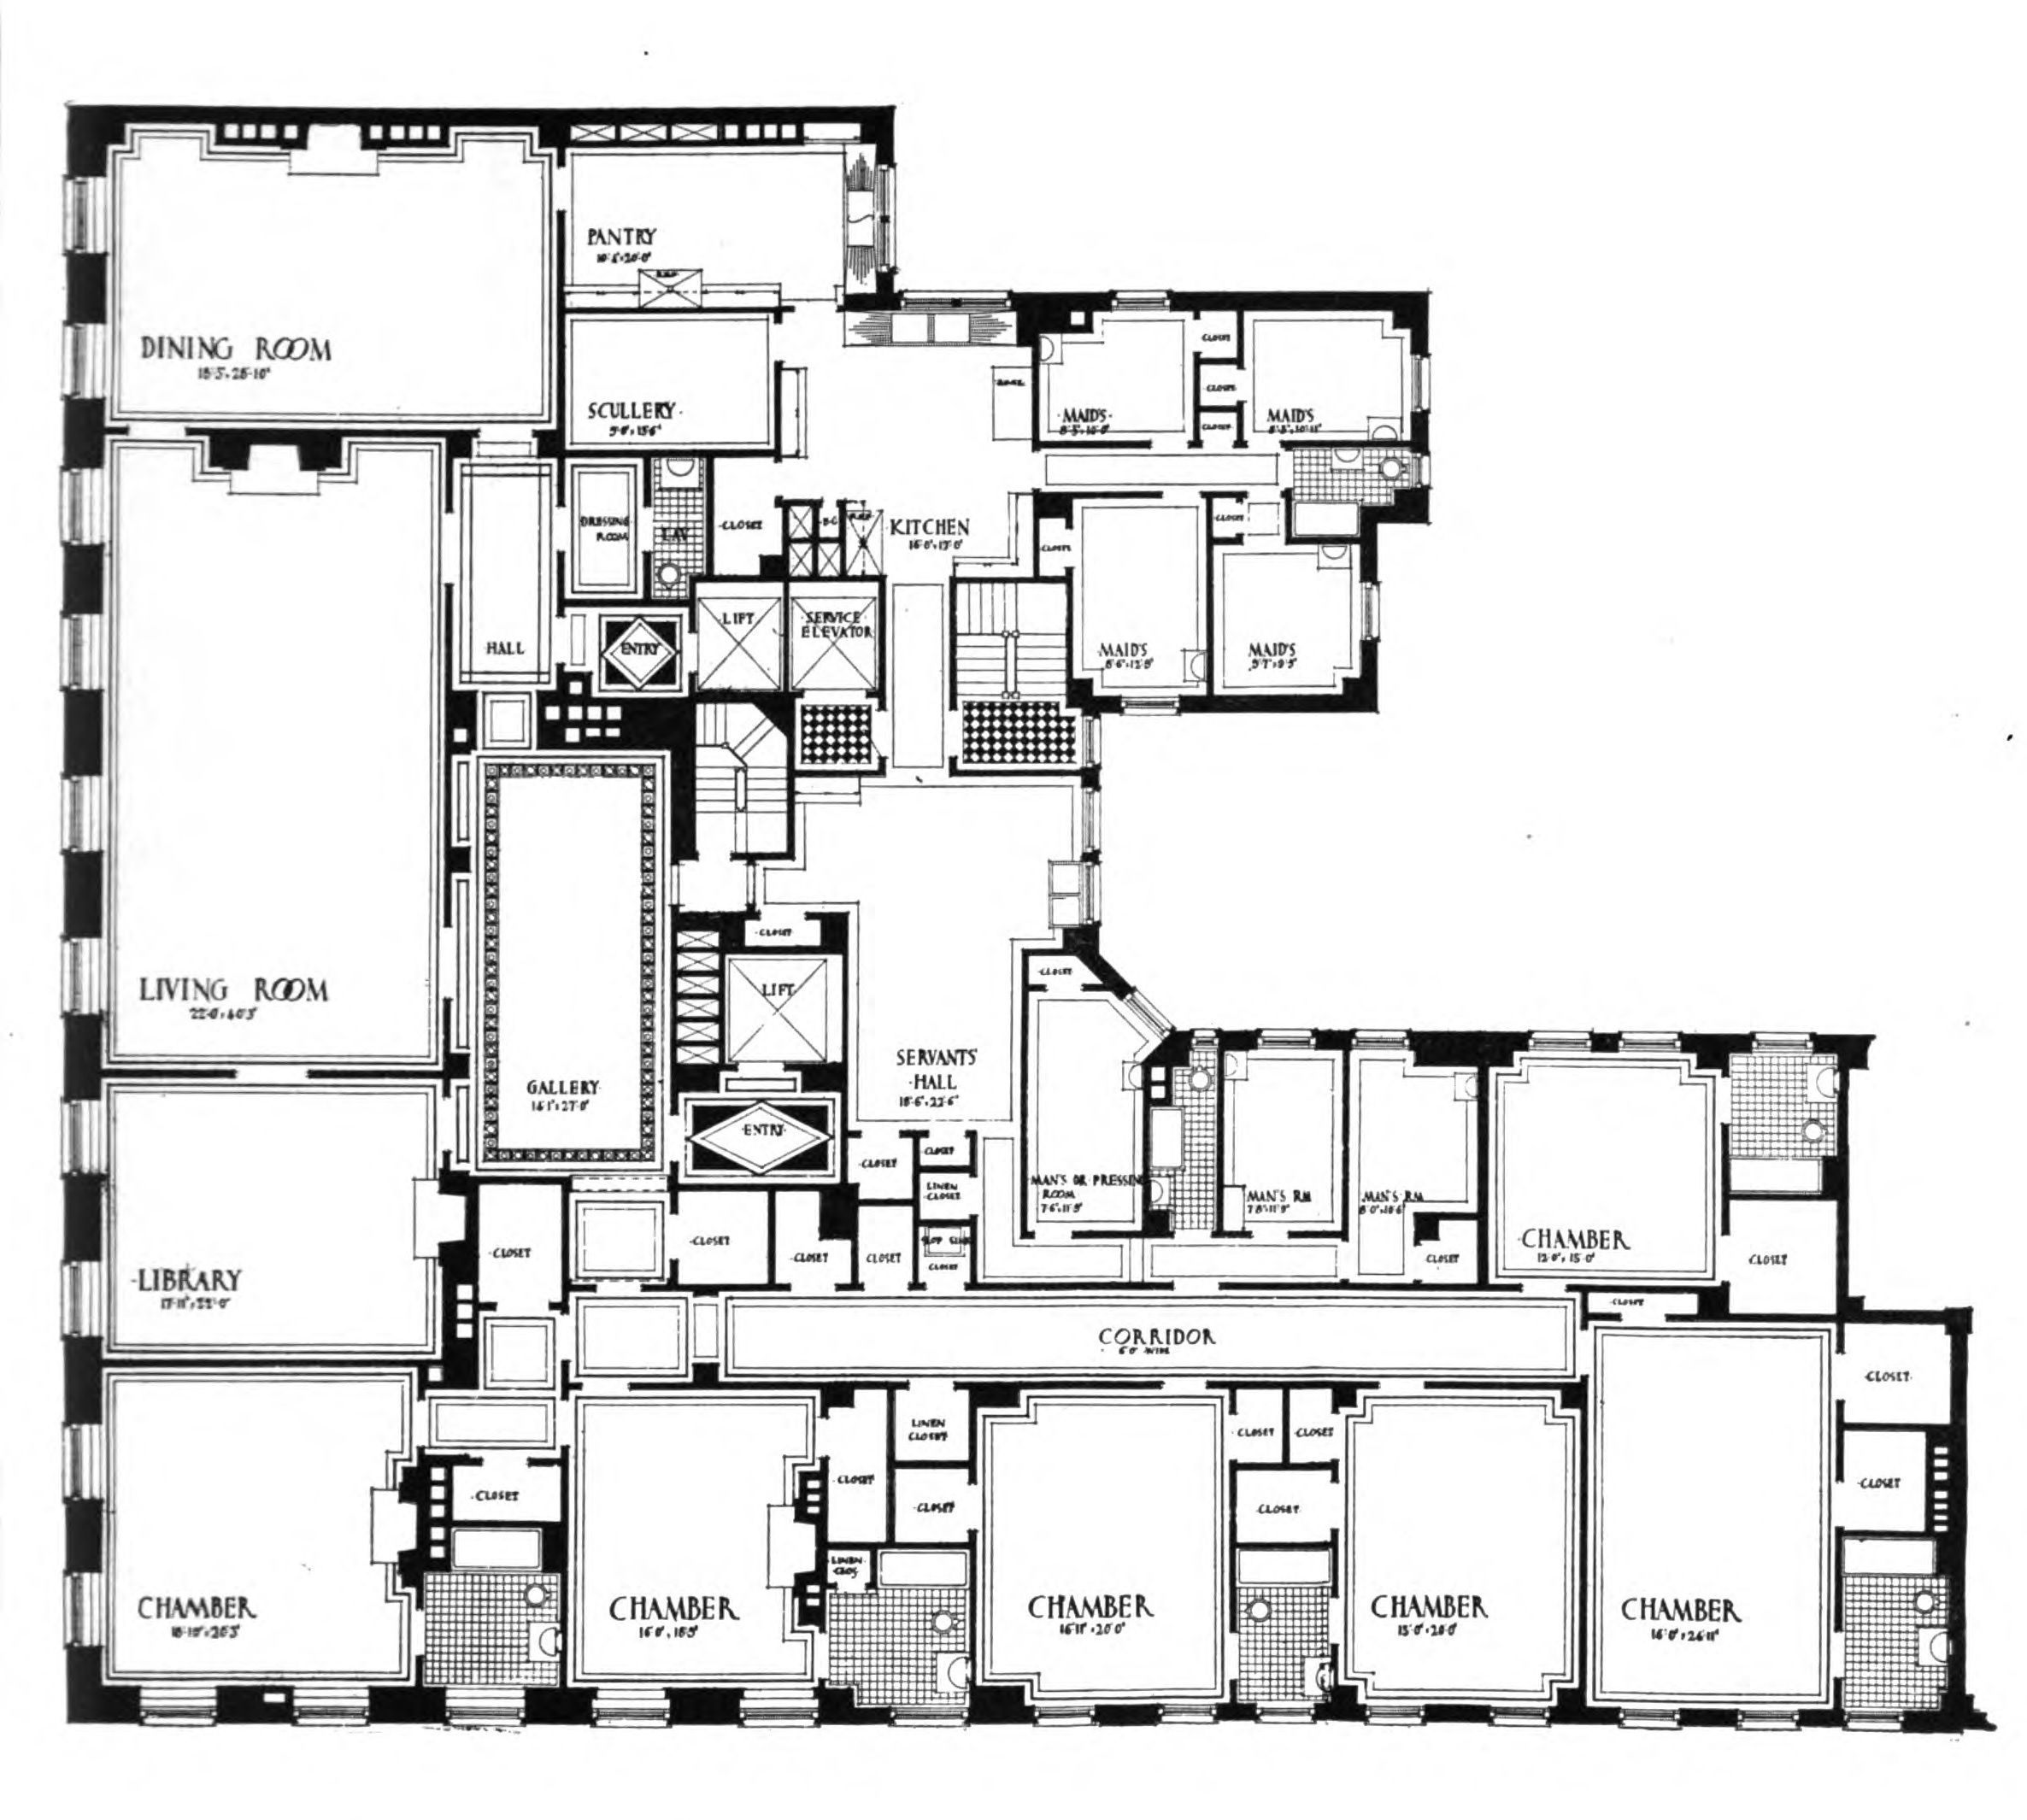 Uncategorized 960 Fifth Avenue Floor Plan Impressive In Exquisite For One Of Those Tiny Manhattan Apartments You Hear